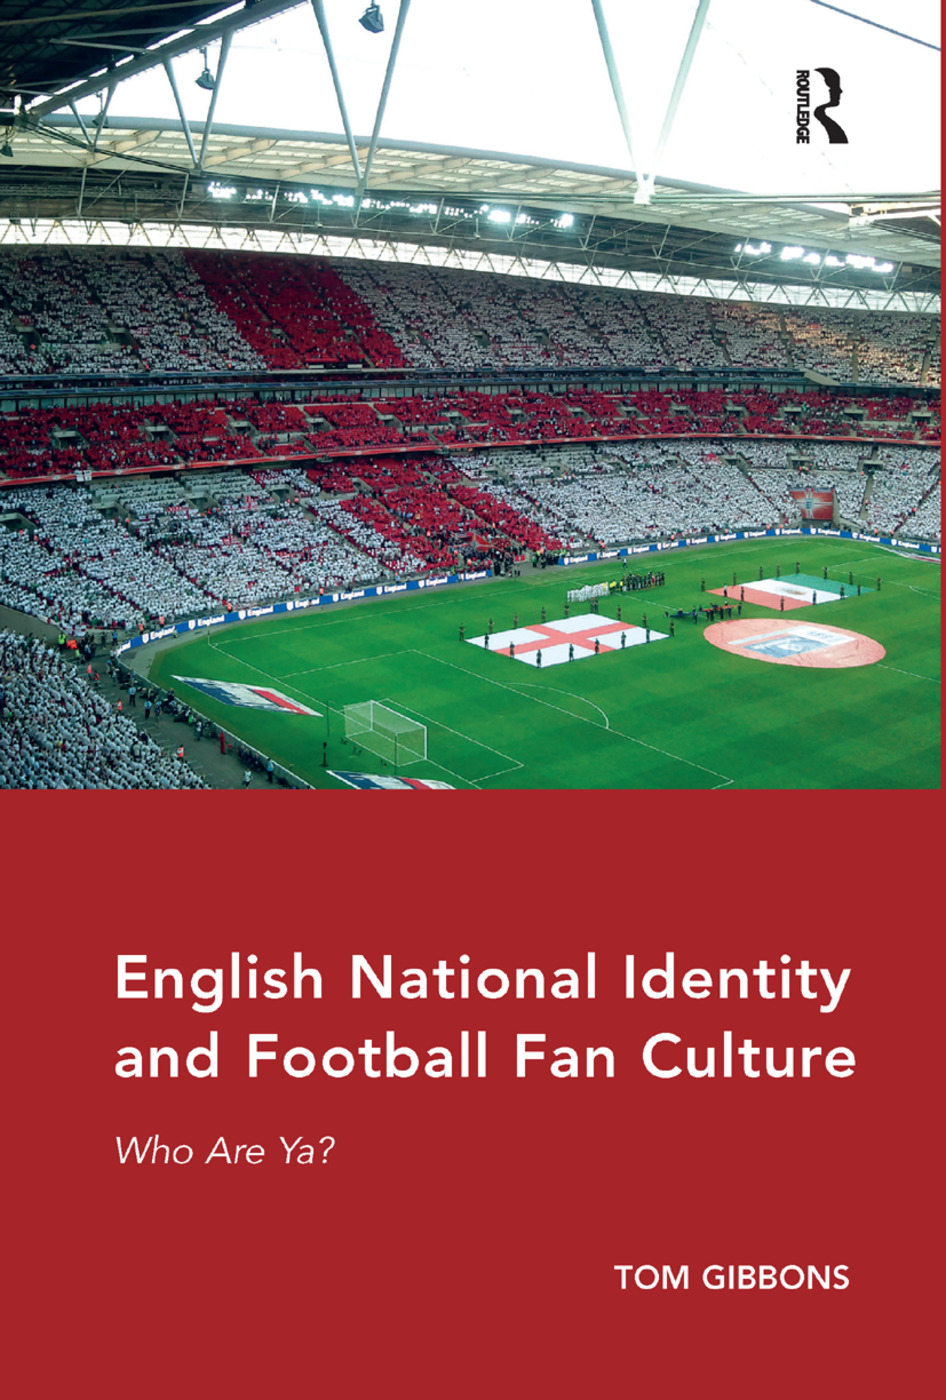 English National Identity and Football Fan Culture: Who Are Ya? book cover